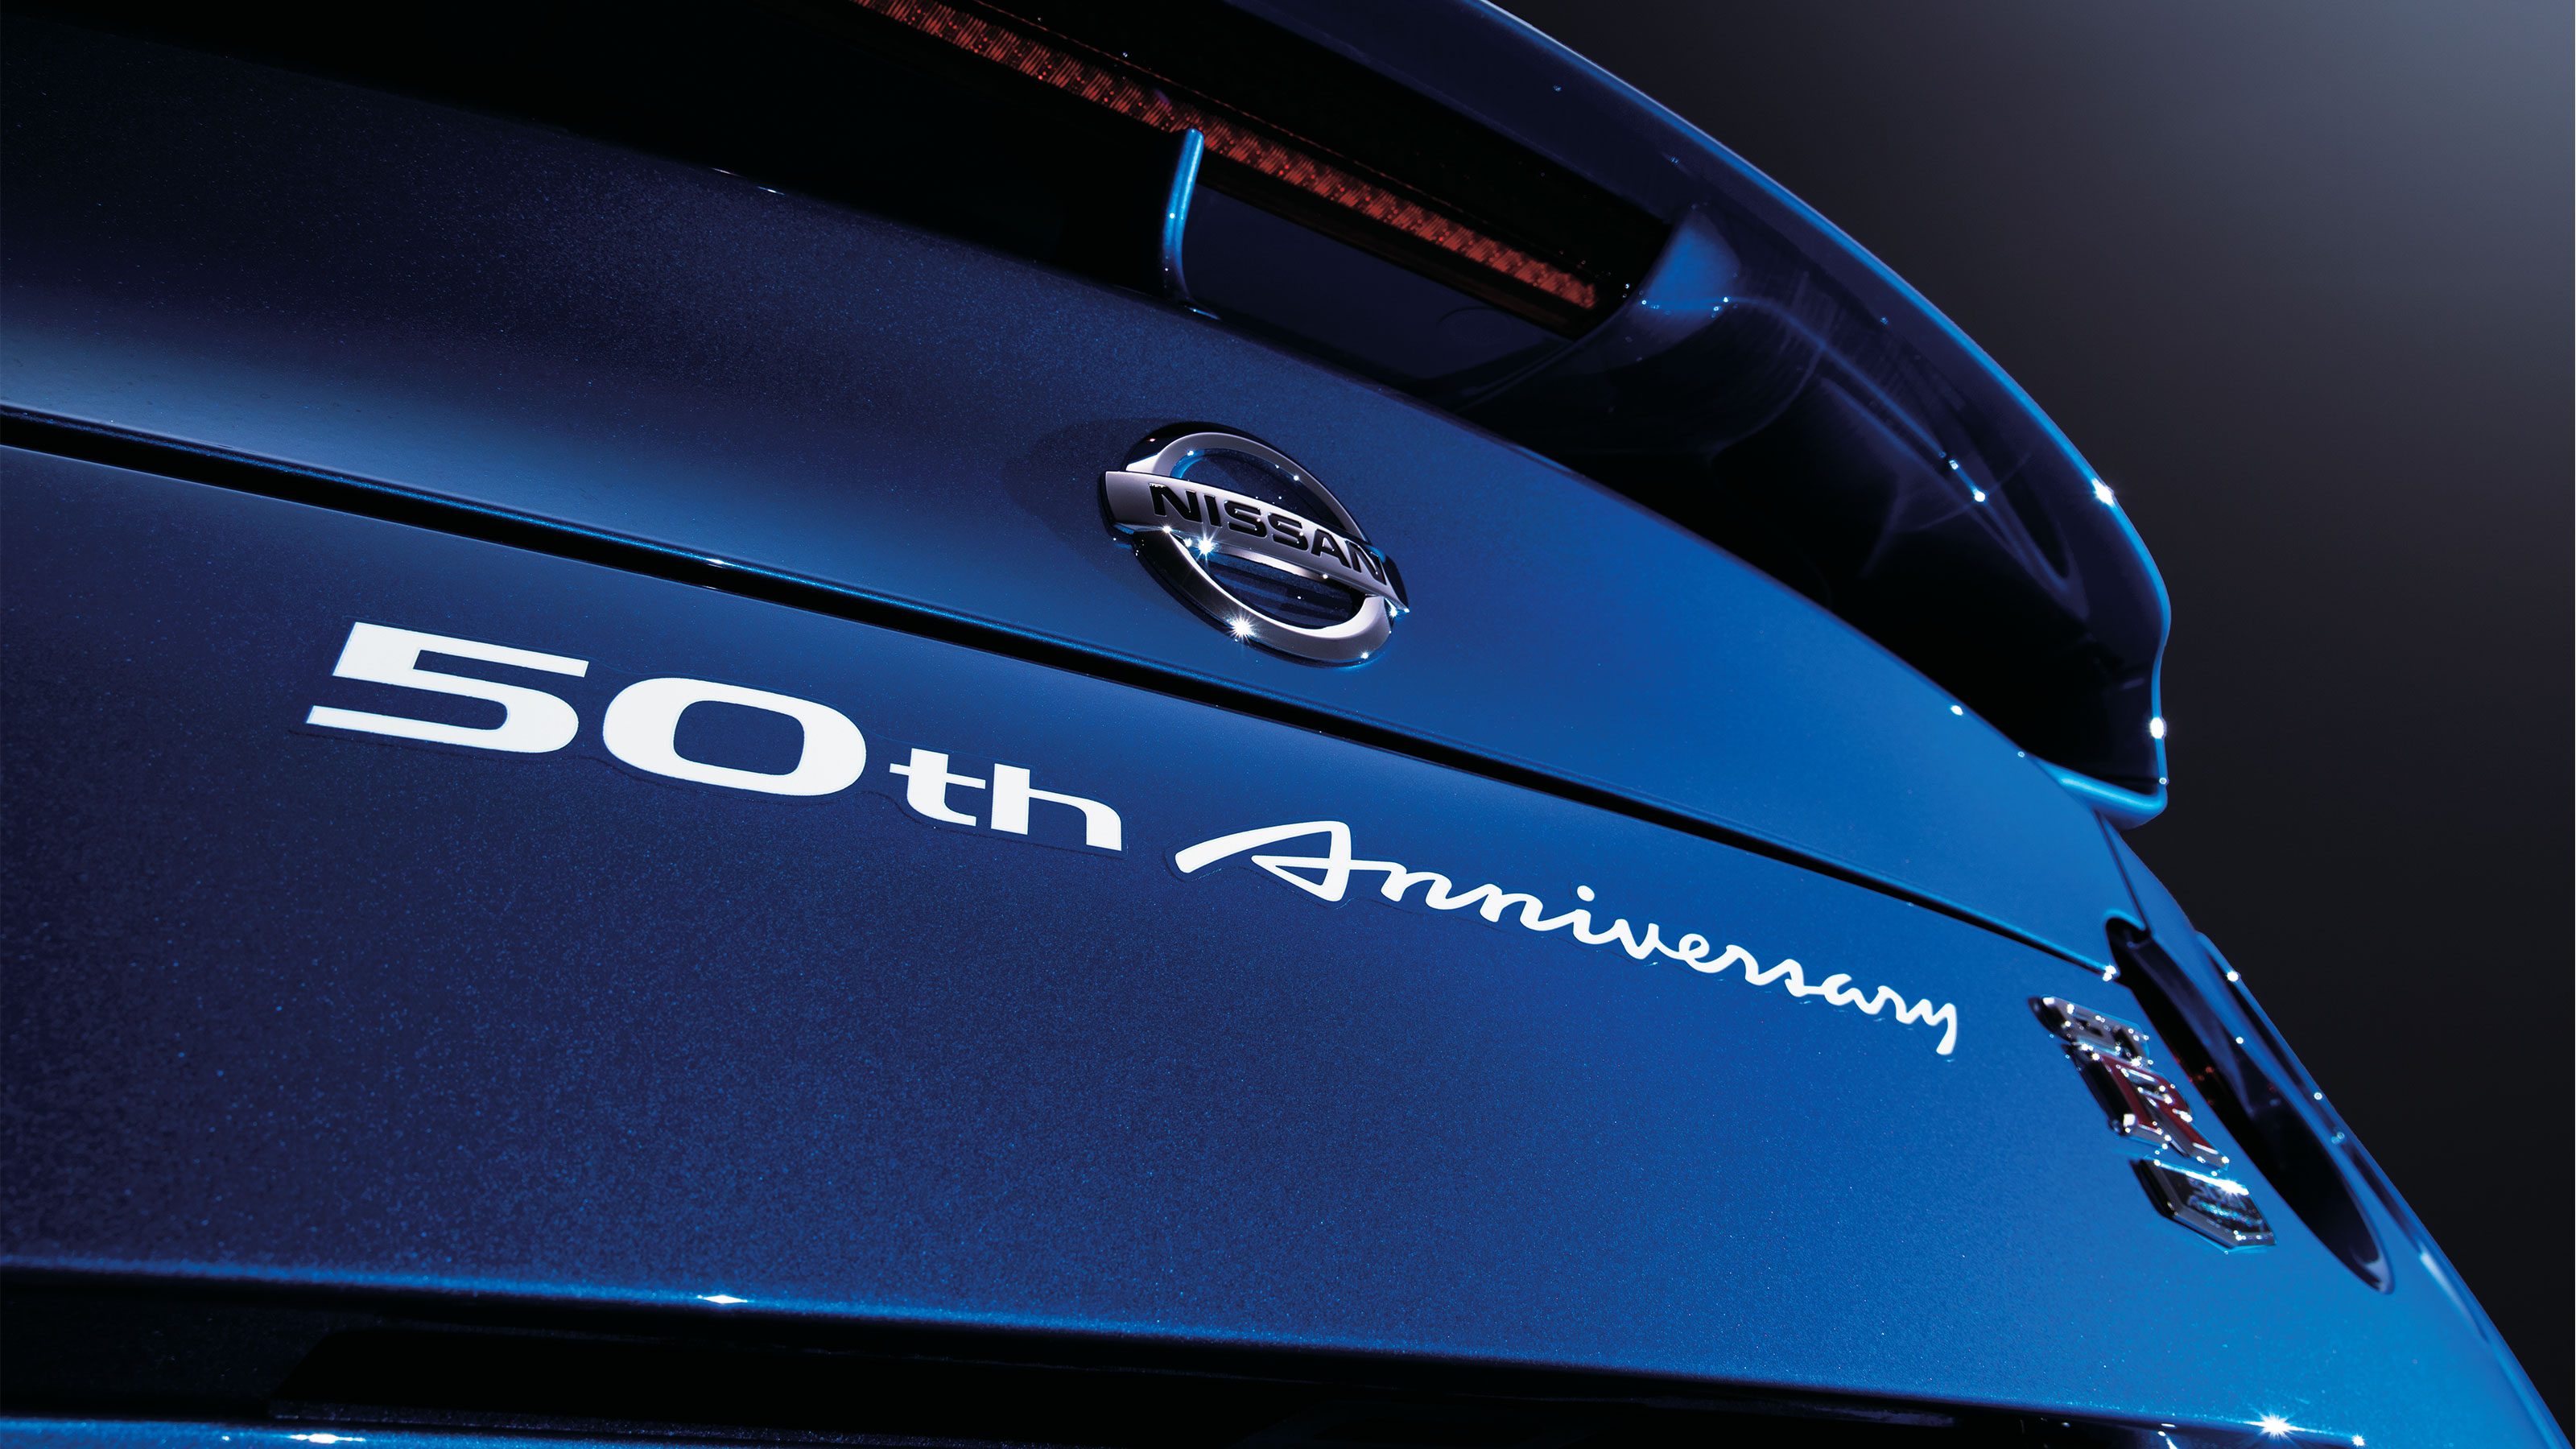 Nissan GT-R 50th Anniversary graphics